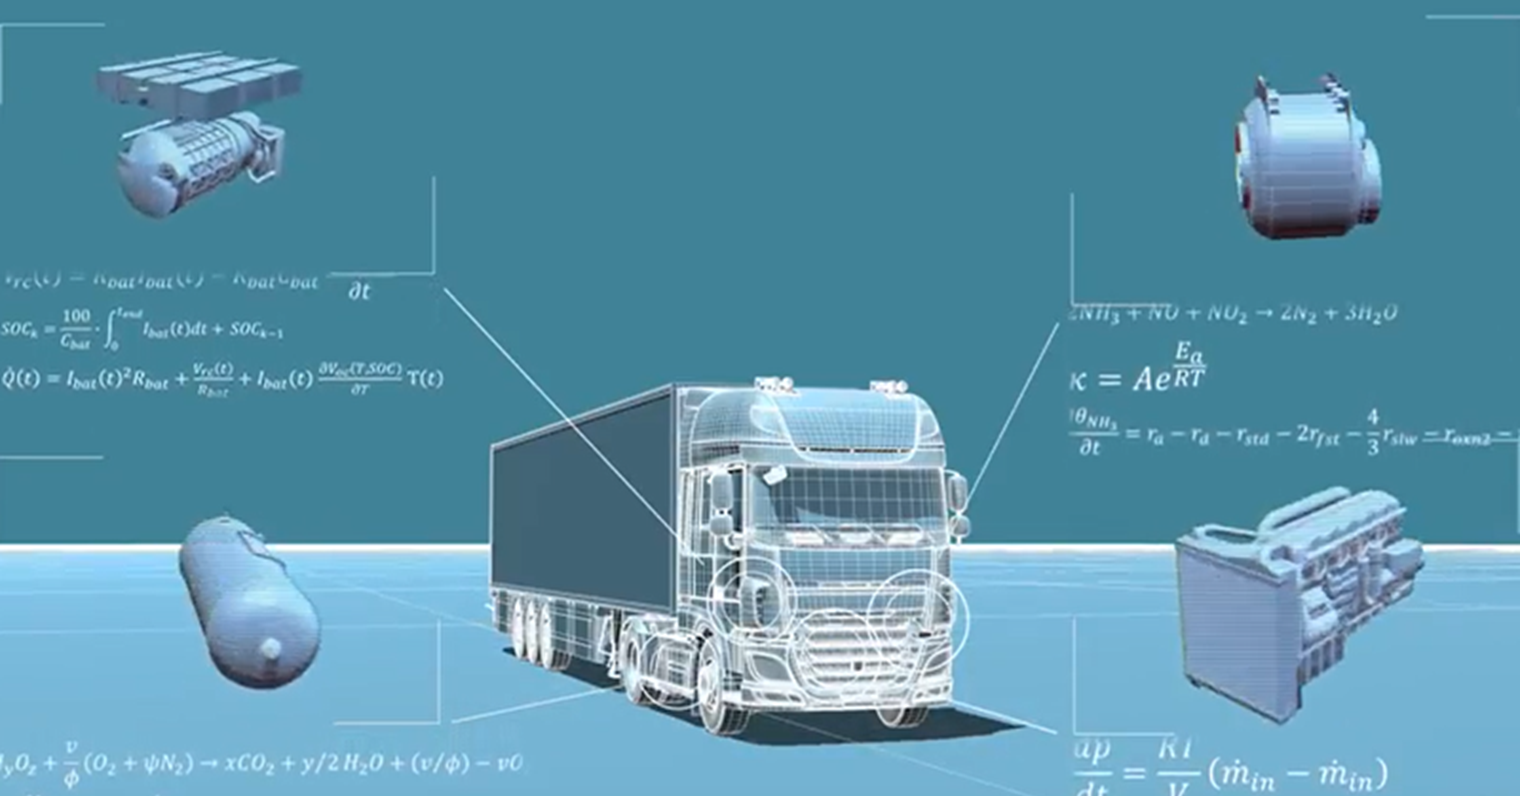 Tno Research On Powertrains Nuclear Power Plant Diagram Animation